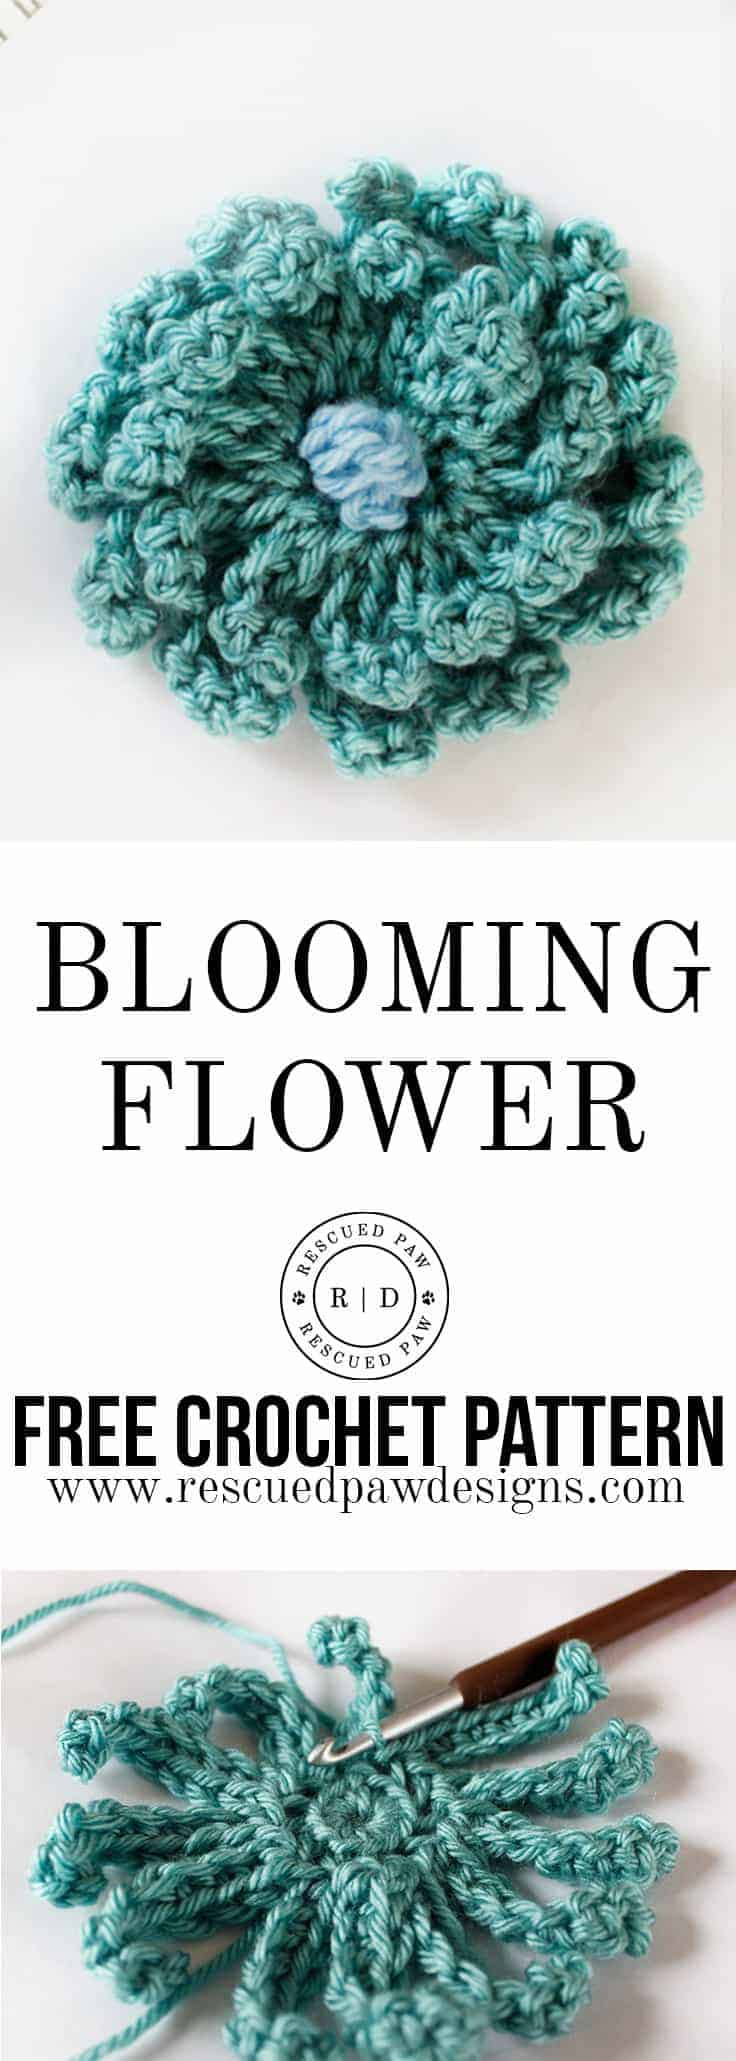 Blooming Flower Crochet Pattern by Rescued Paw Designs